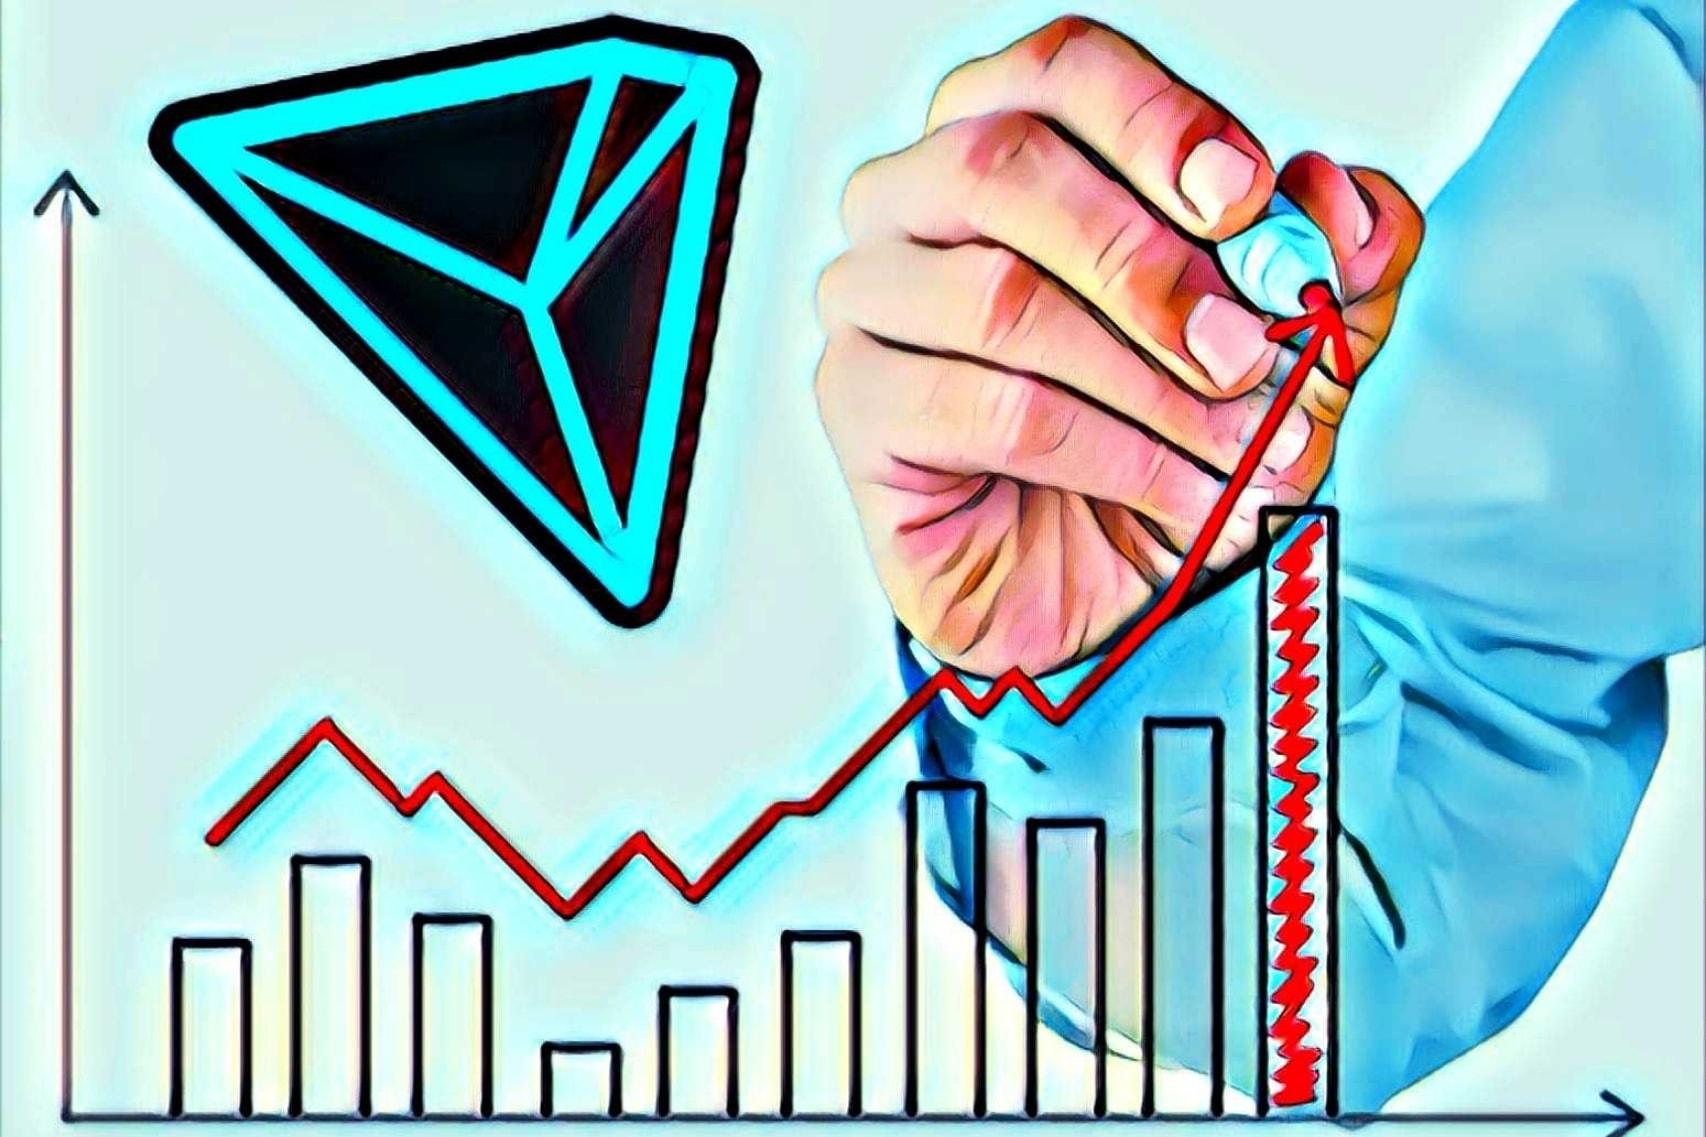 TRON (TRX) Now Has 2 Million Users – What's Next for Justin Sun and Team?